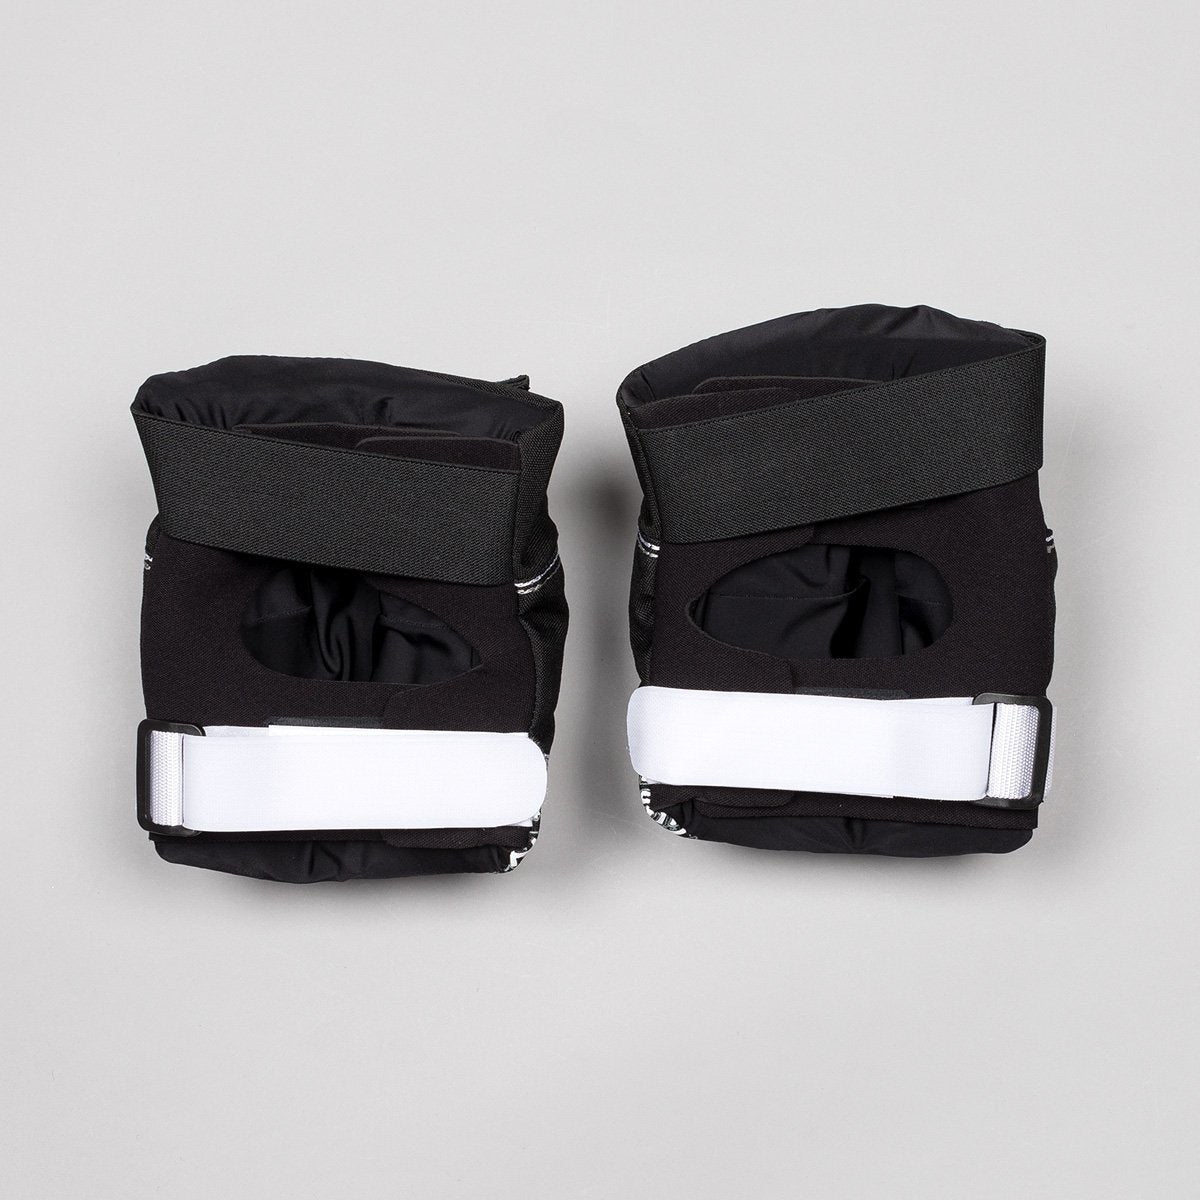 187 Killer Pro Knee Pads Black/White - Safety Gear